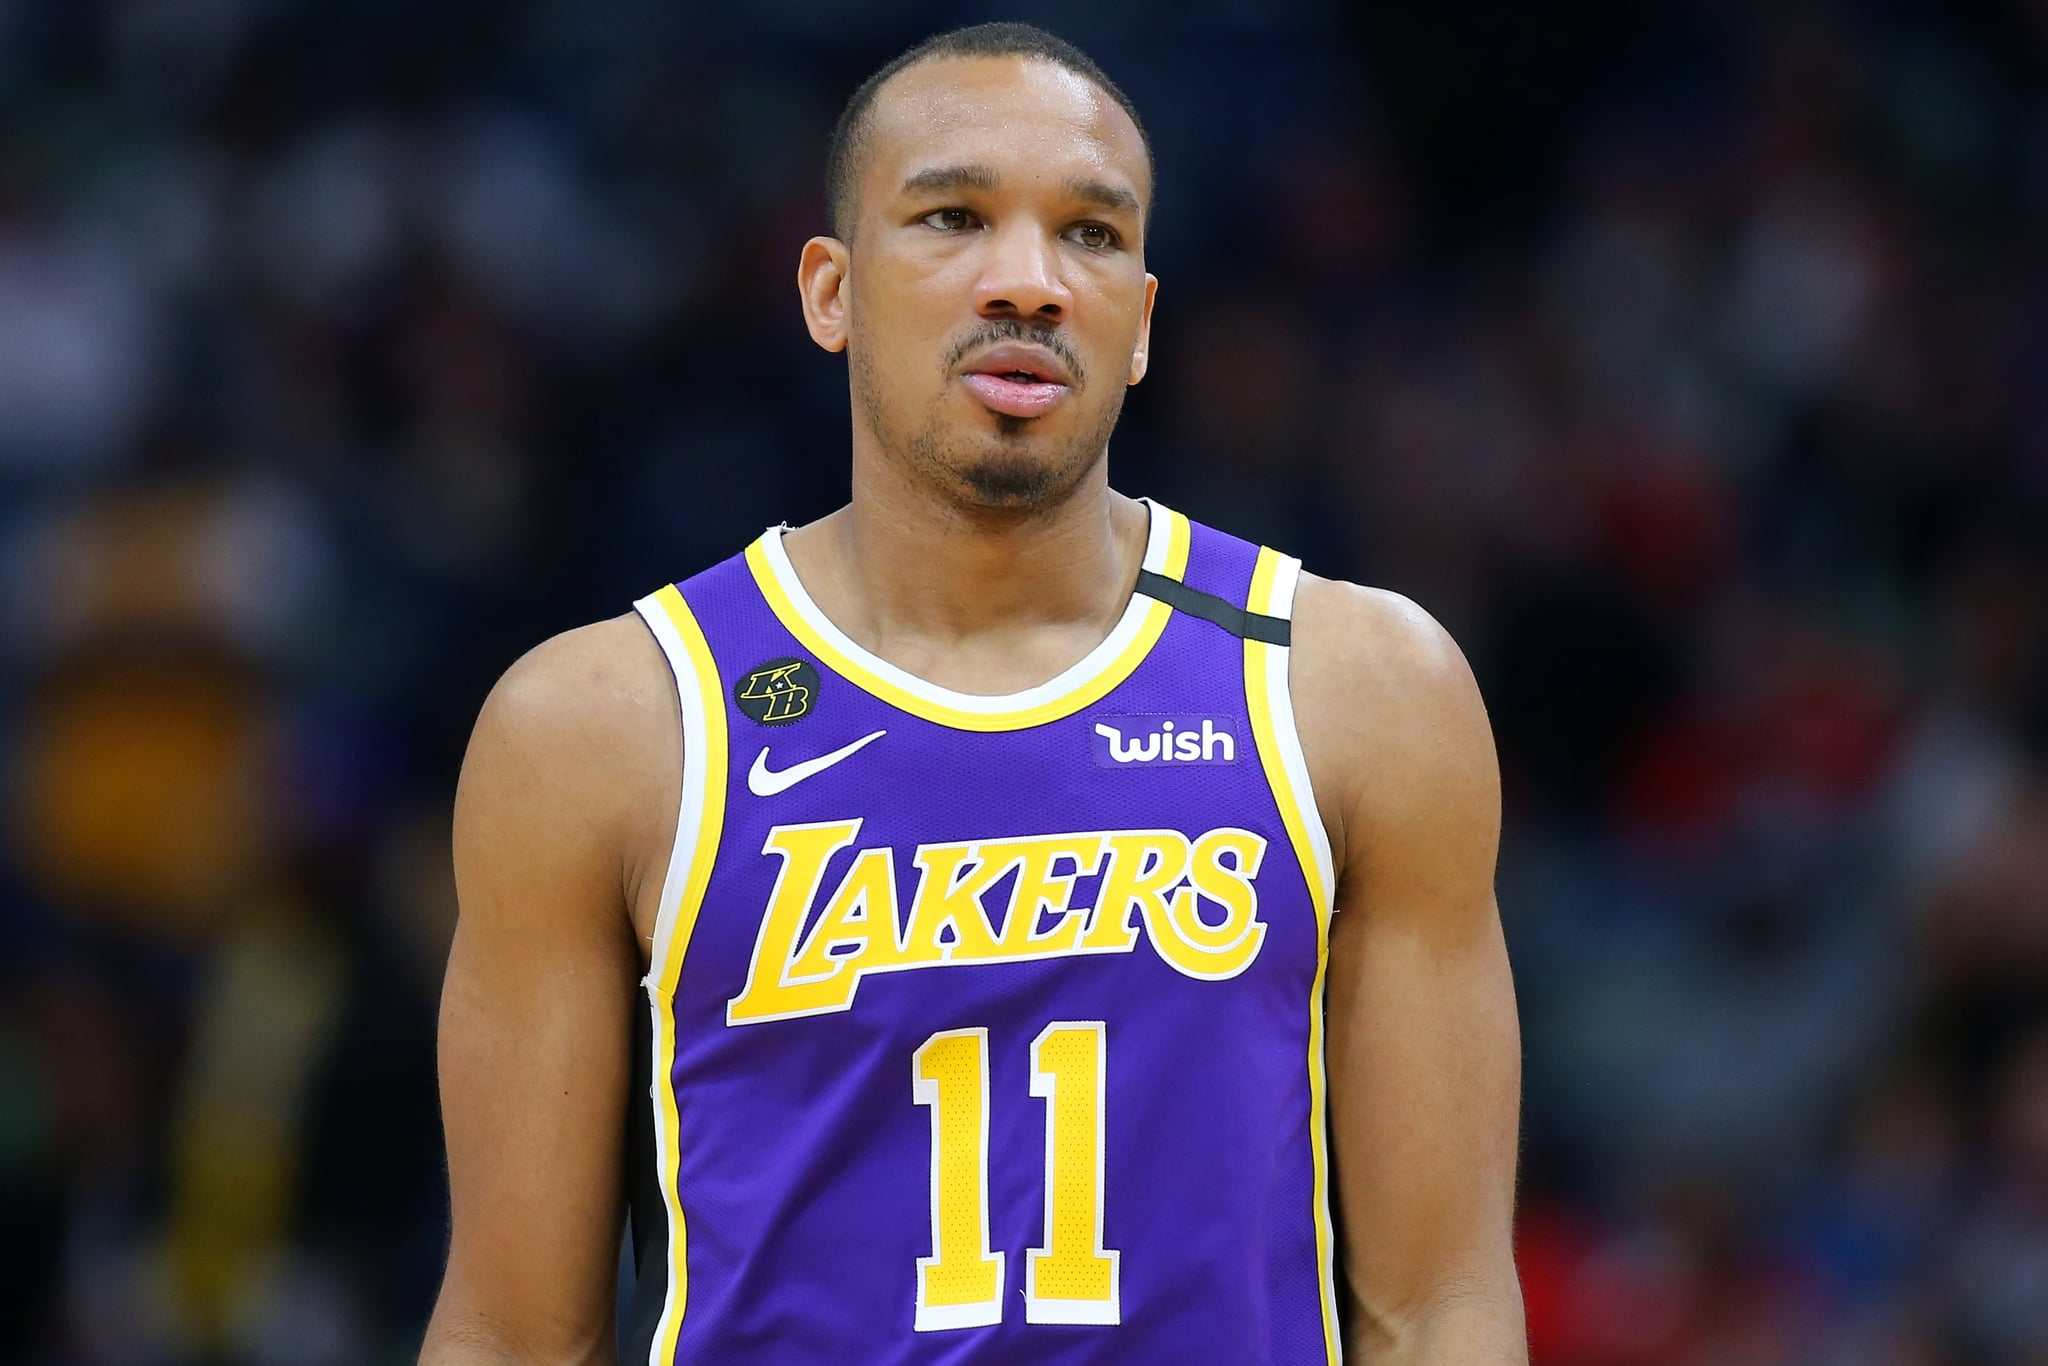 NEW ORLEANS, LOUISIANA - MARCH 01: Avery Bradley #11 of the Los Angeles Lakers reacts against the New Orleans Pelicans during the second half at the Smoothie King Centre on March 01, 2020 in New Orleans, Louisiana. NOTE TO USER: User expressly acknowledges and agrees that, by downloading and or using this Photograph, user is consenting to the terms and conditions of the Getty Images Licence Agreement. (Photo by Jonathan Bachman/Getty Images)